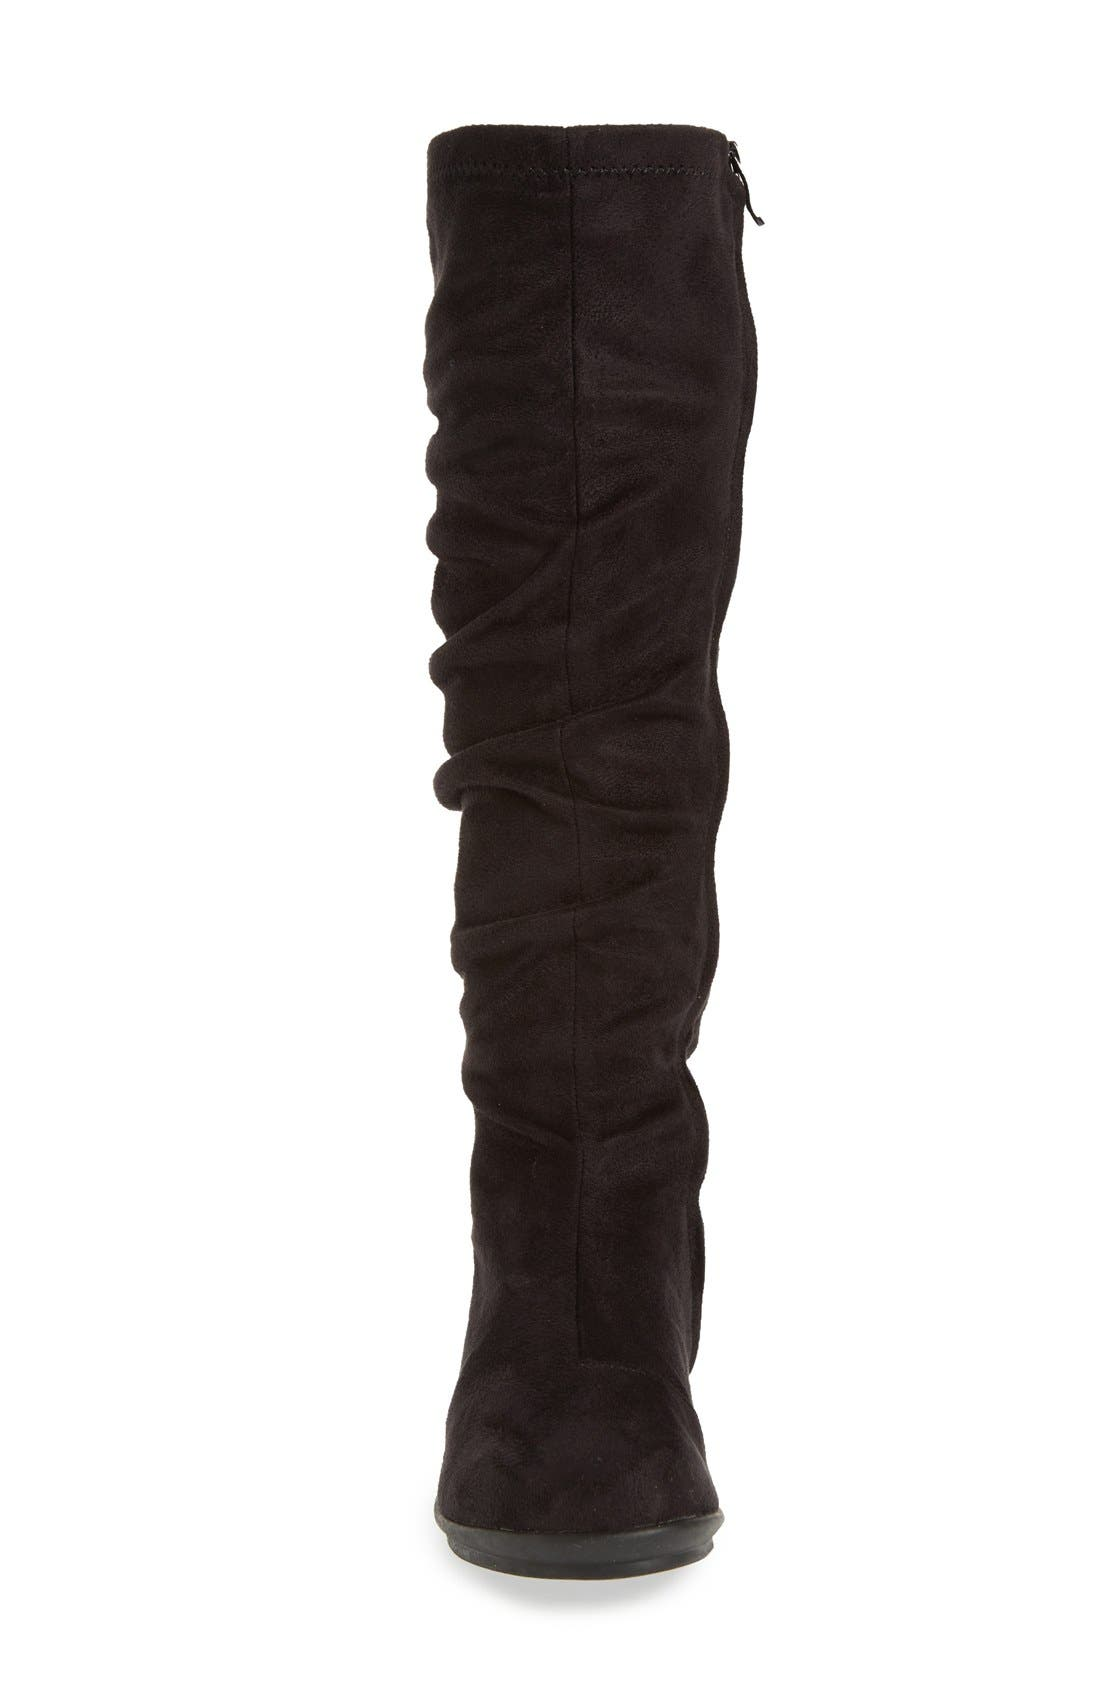 Alternate Image 3  - Bussola 'Creta' Water Resistant Slouchy Knee-High Boot (Women)